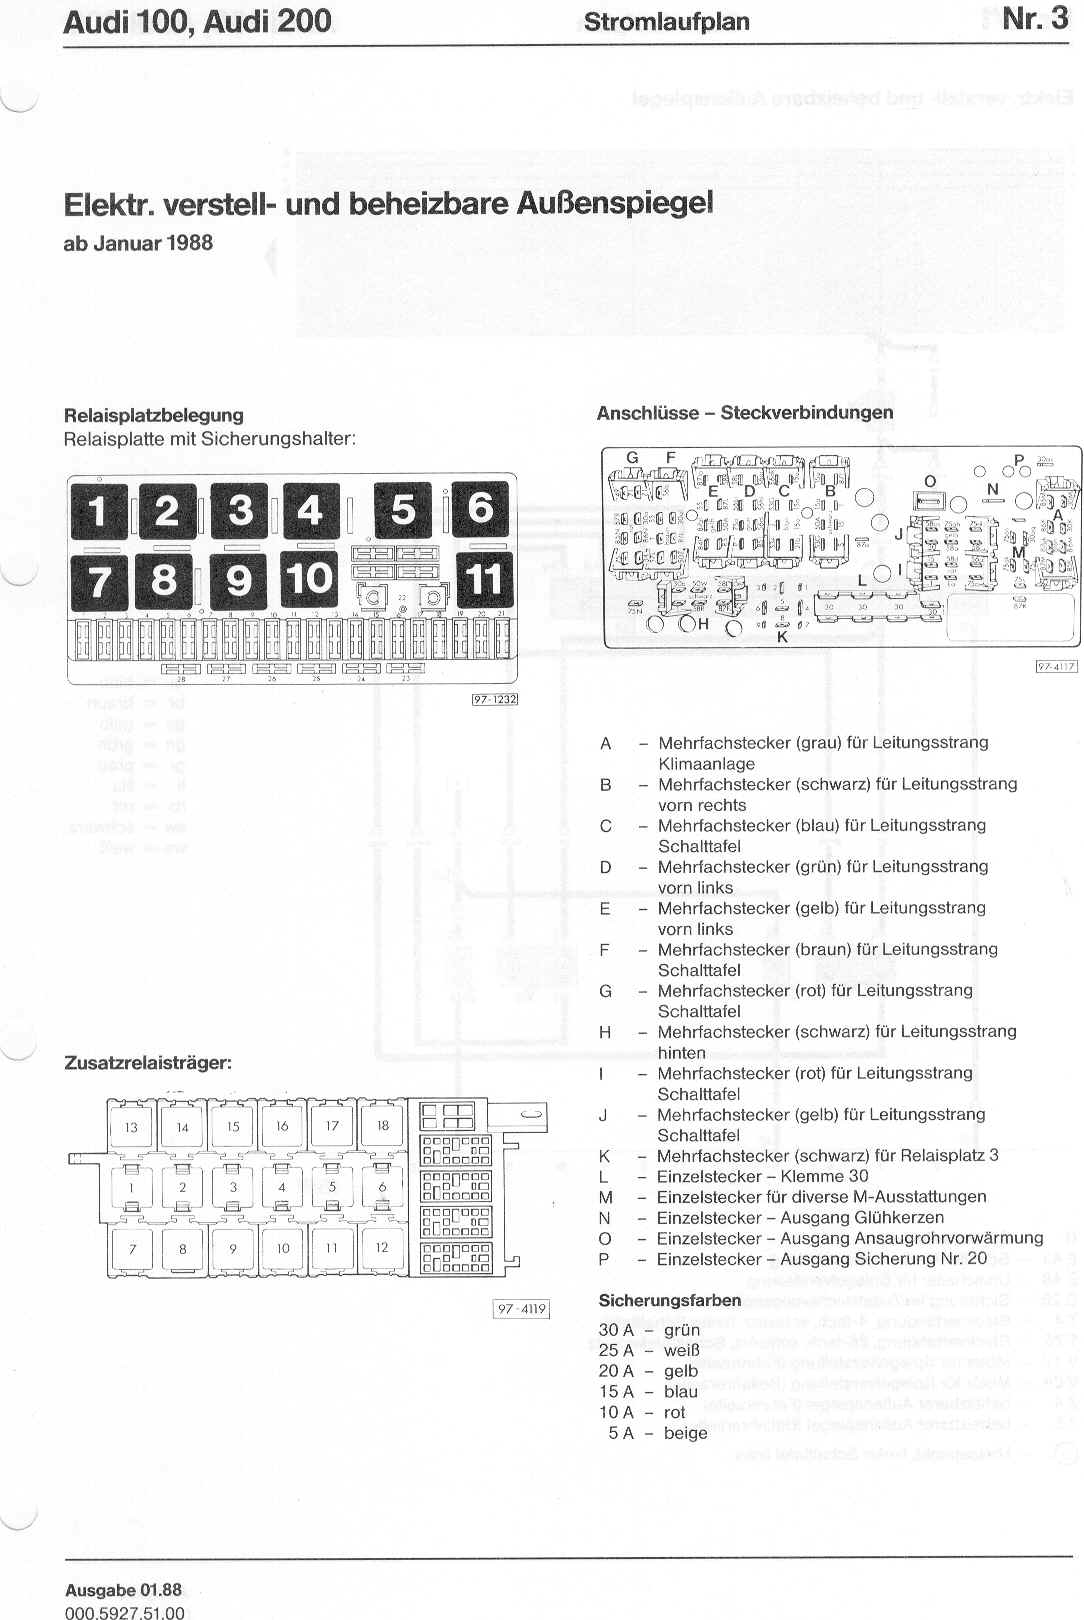 audi 100 200 factory wiring diagrams rh sizov org 1998 Audi A4 Fuse Box  Location Audi